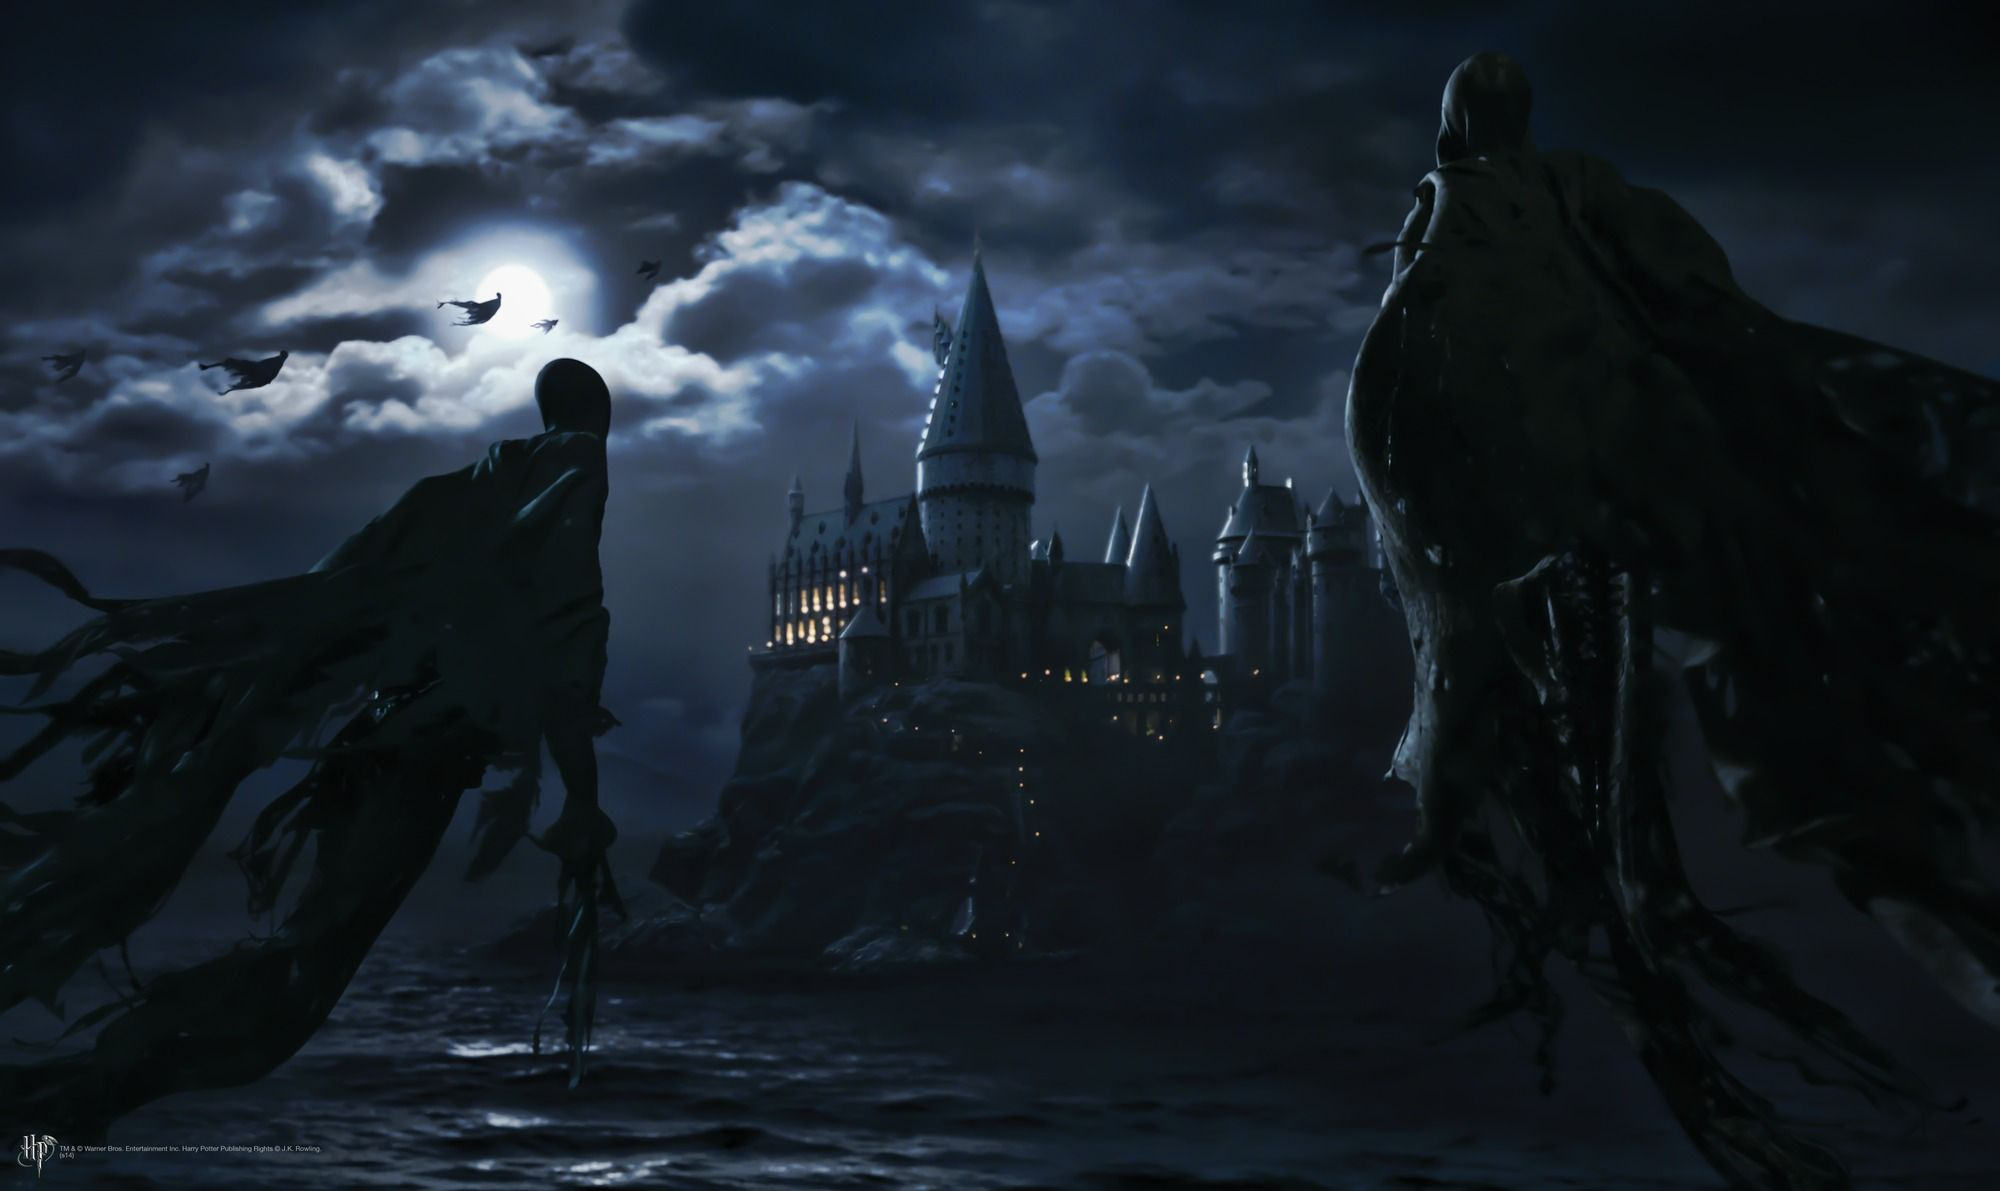 Dementors attack Hogwarts wallpaper mural Harry potter 2000x1191